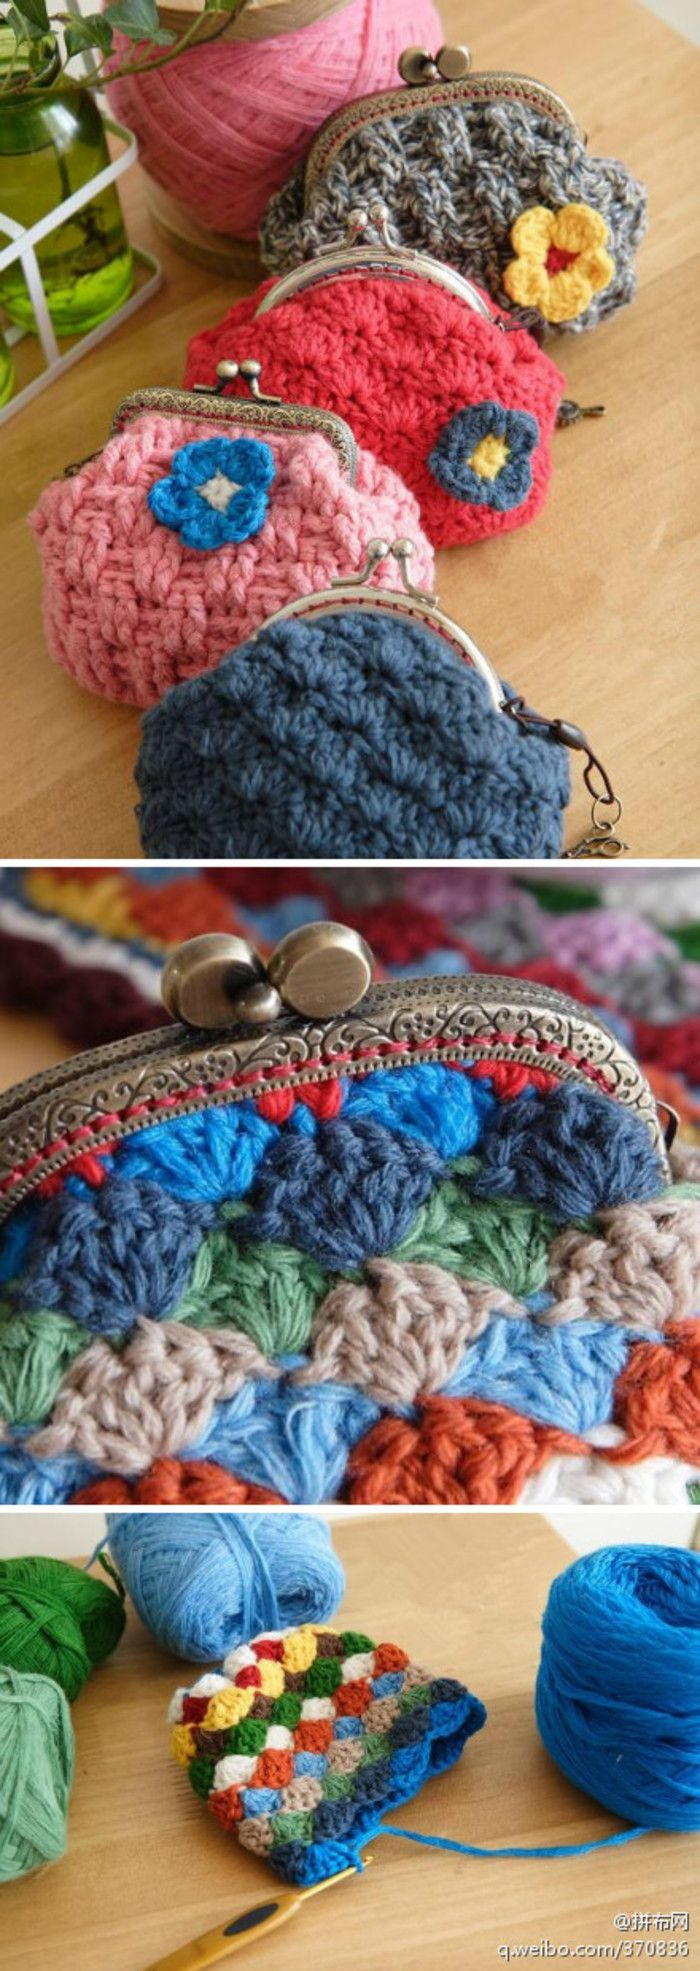 Inspiration! Cute crochet coin purses